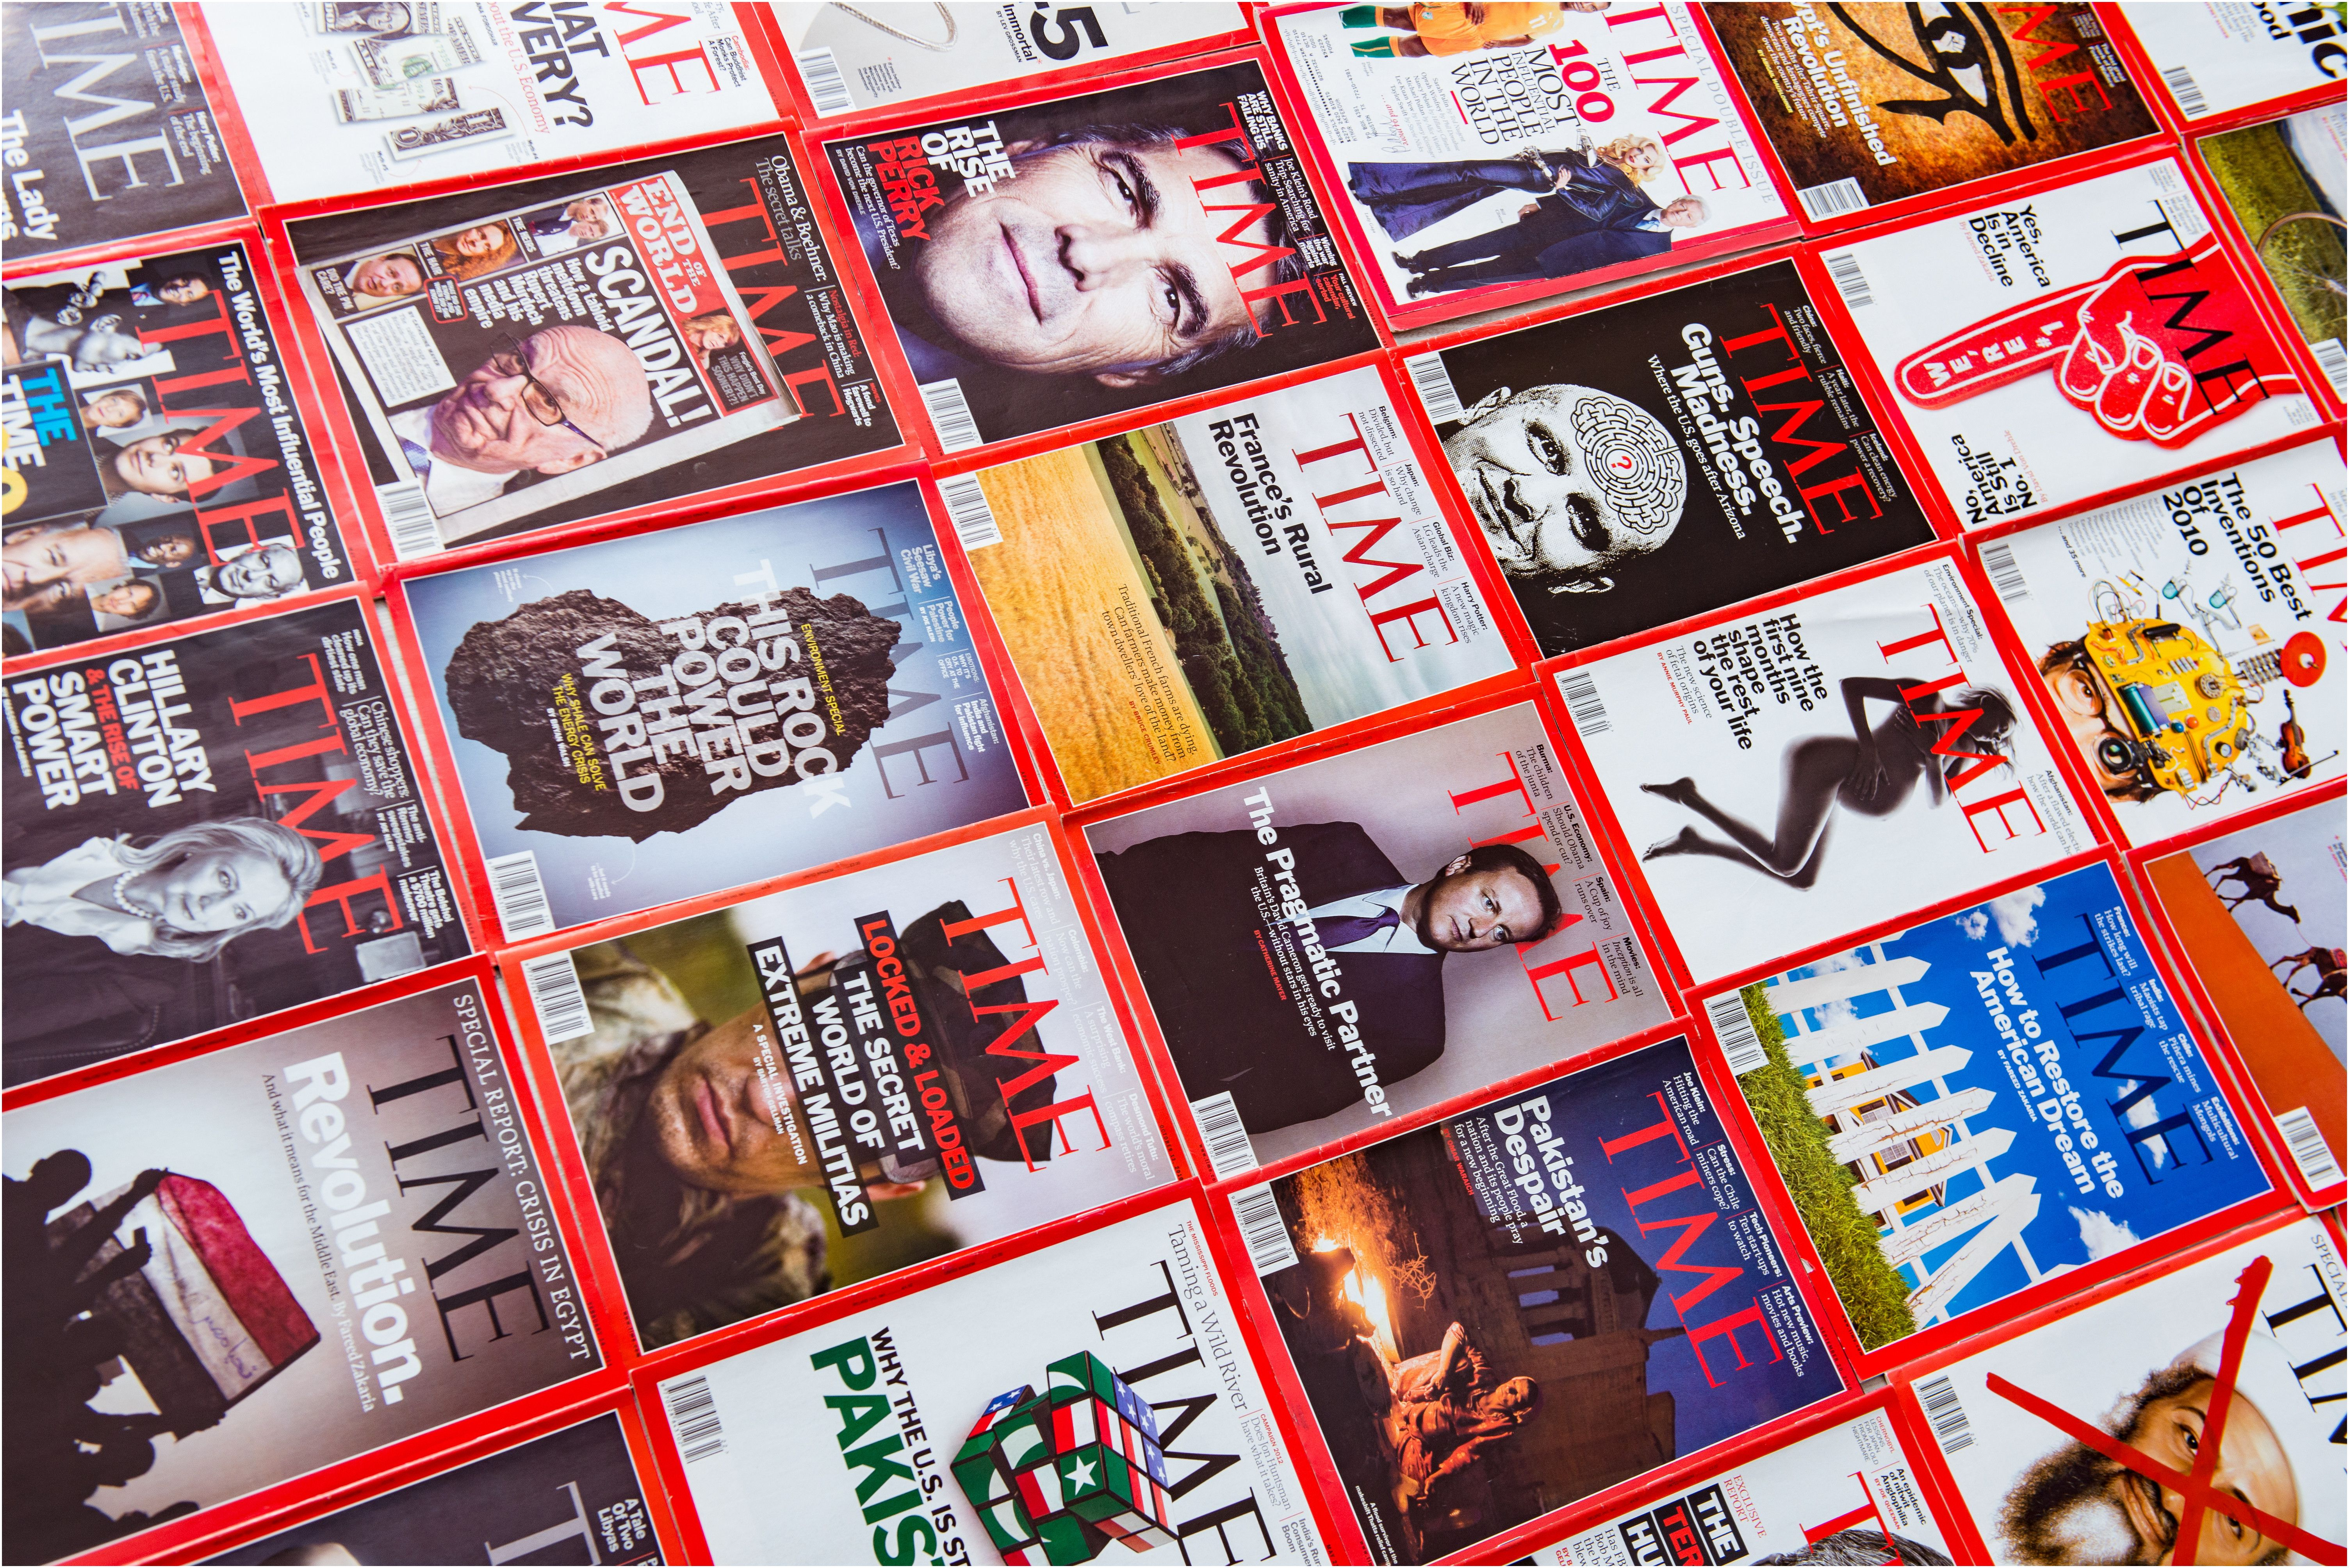 Entrepreneur Magazine Editorial Calendar Time Magazine to Put Sponsored Content On Cover